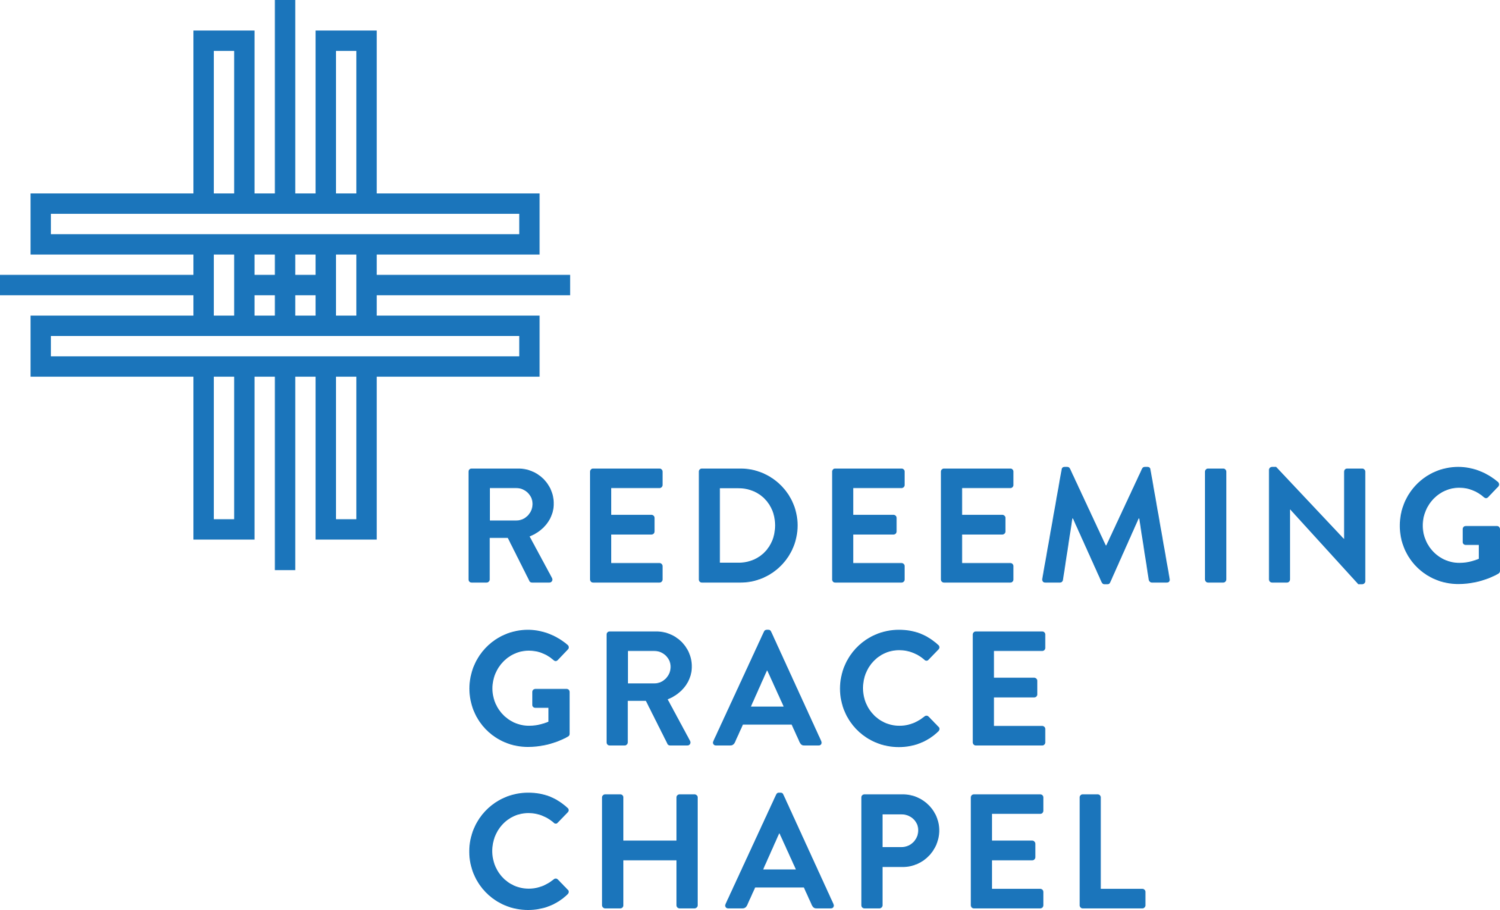 Redeeming Grace Chapel